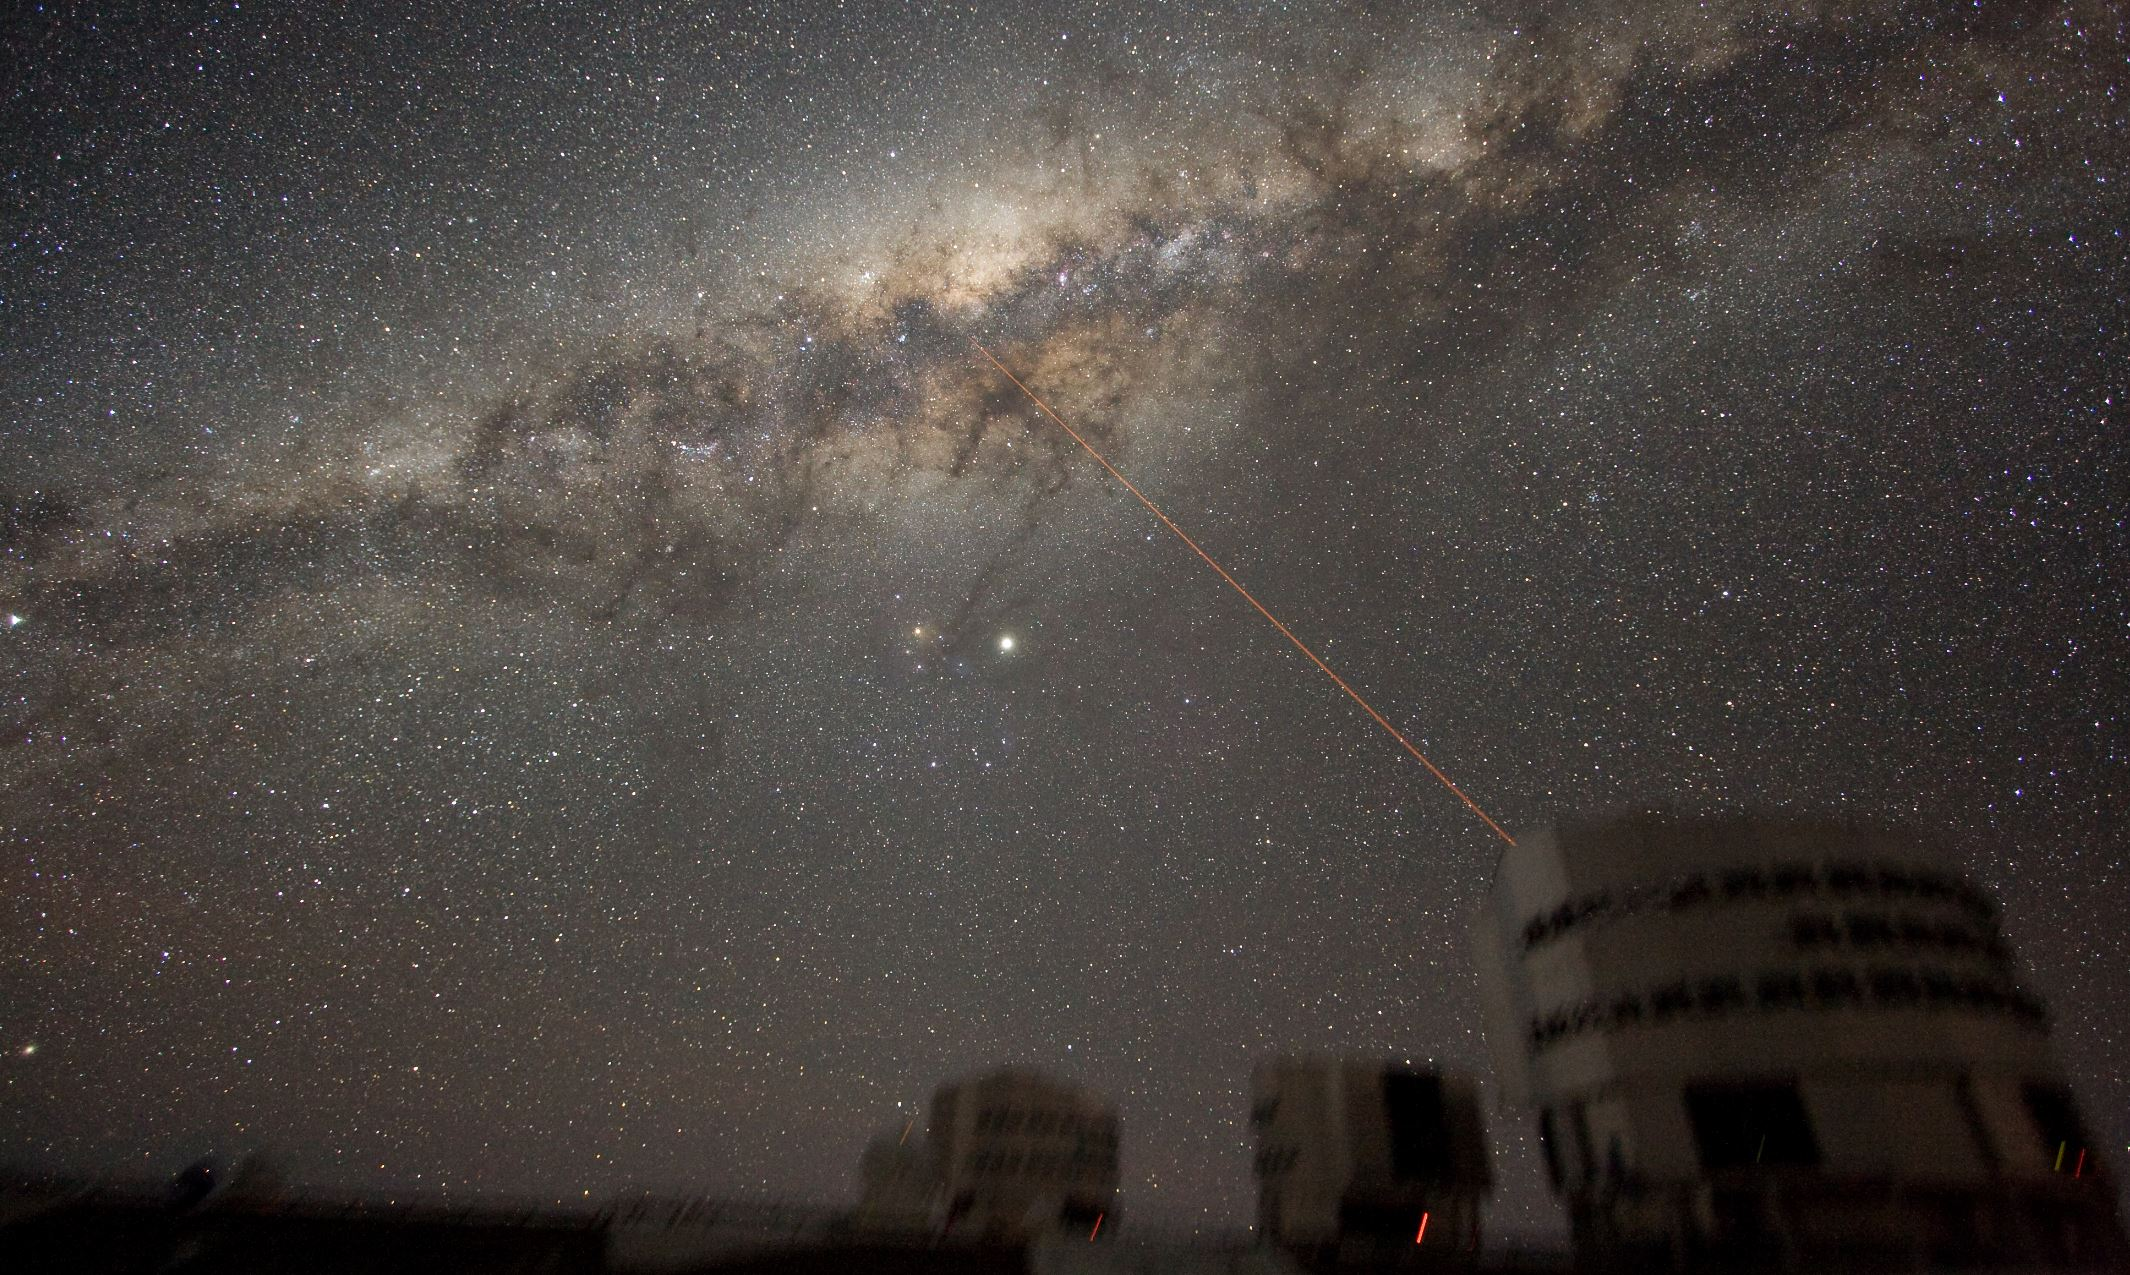 Image Credit:  ESO/Y. Beletsky via Wikimedia Commons (click to enlarge)